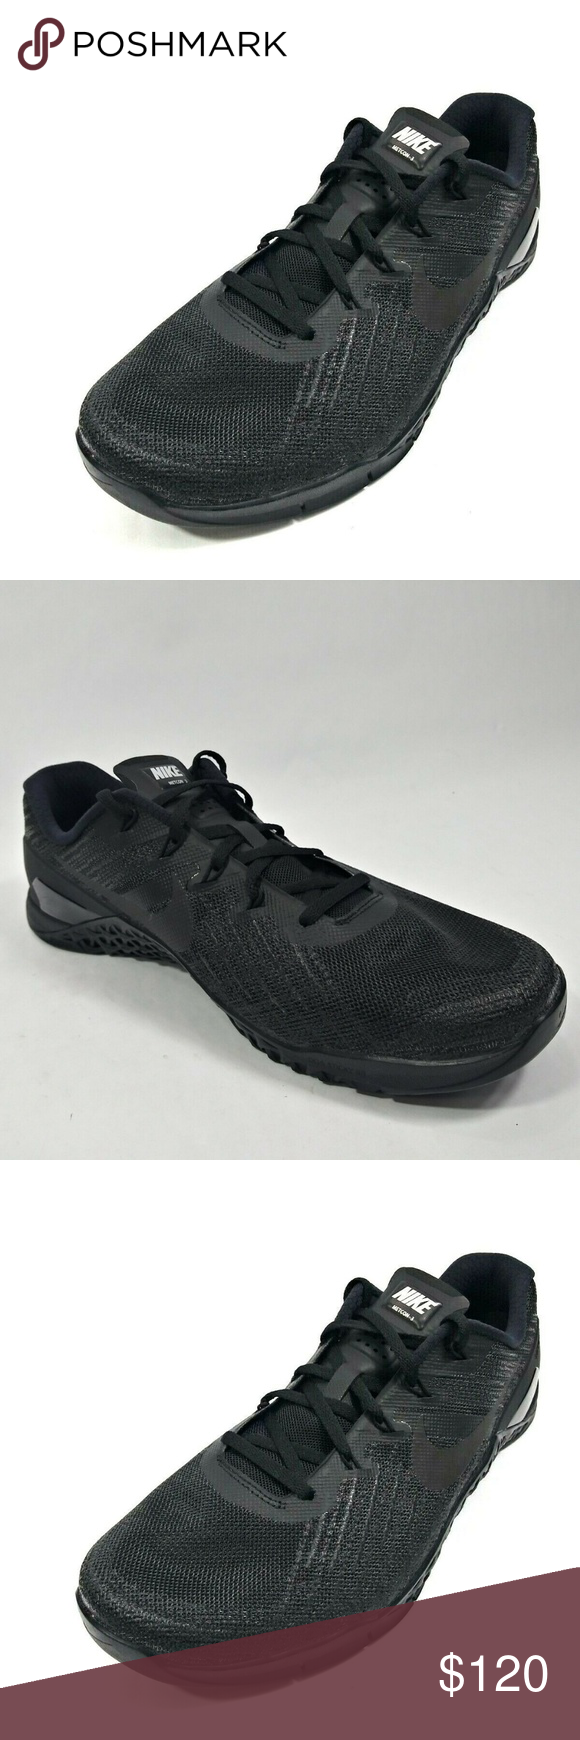 c960ecd5c8e2f Nike Metcon 3 III CrossFit Shoe 852928-002 Nike Metcon 3 III Triple Black  Men's CrossFit Shoes Size 10 852928-002 A030307PM Nike Shoes Athletic Shoes